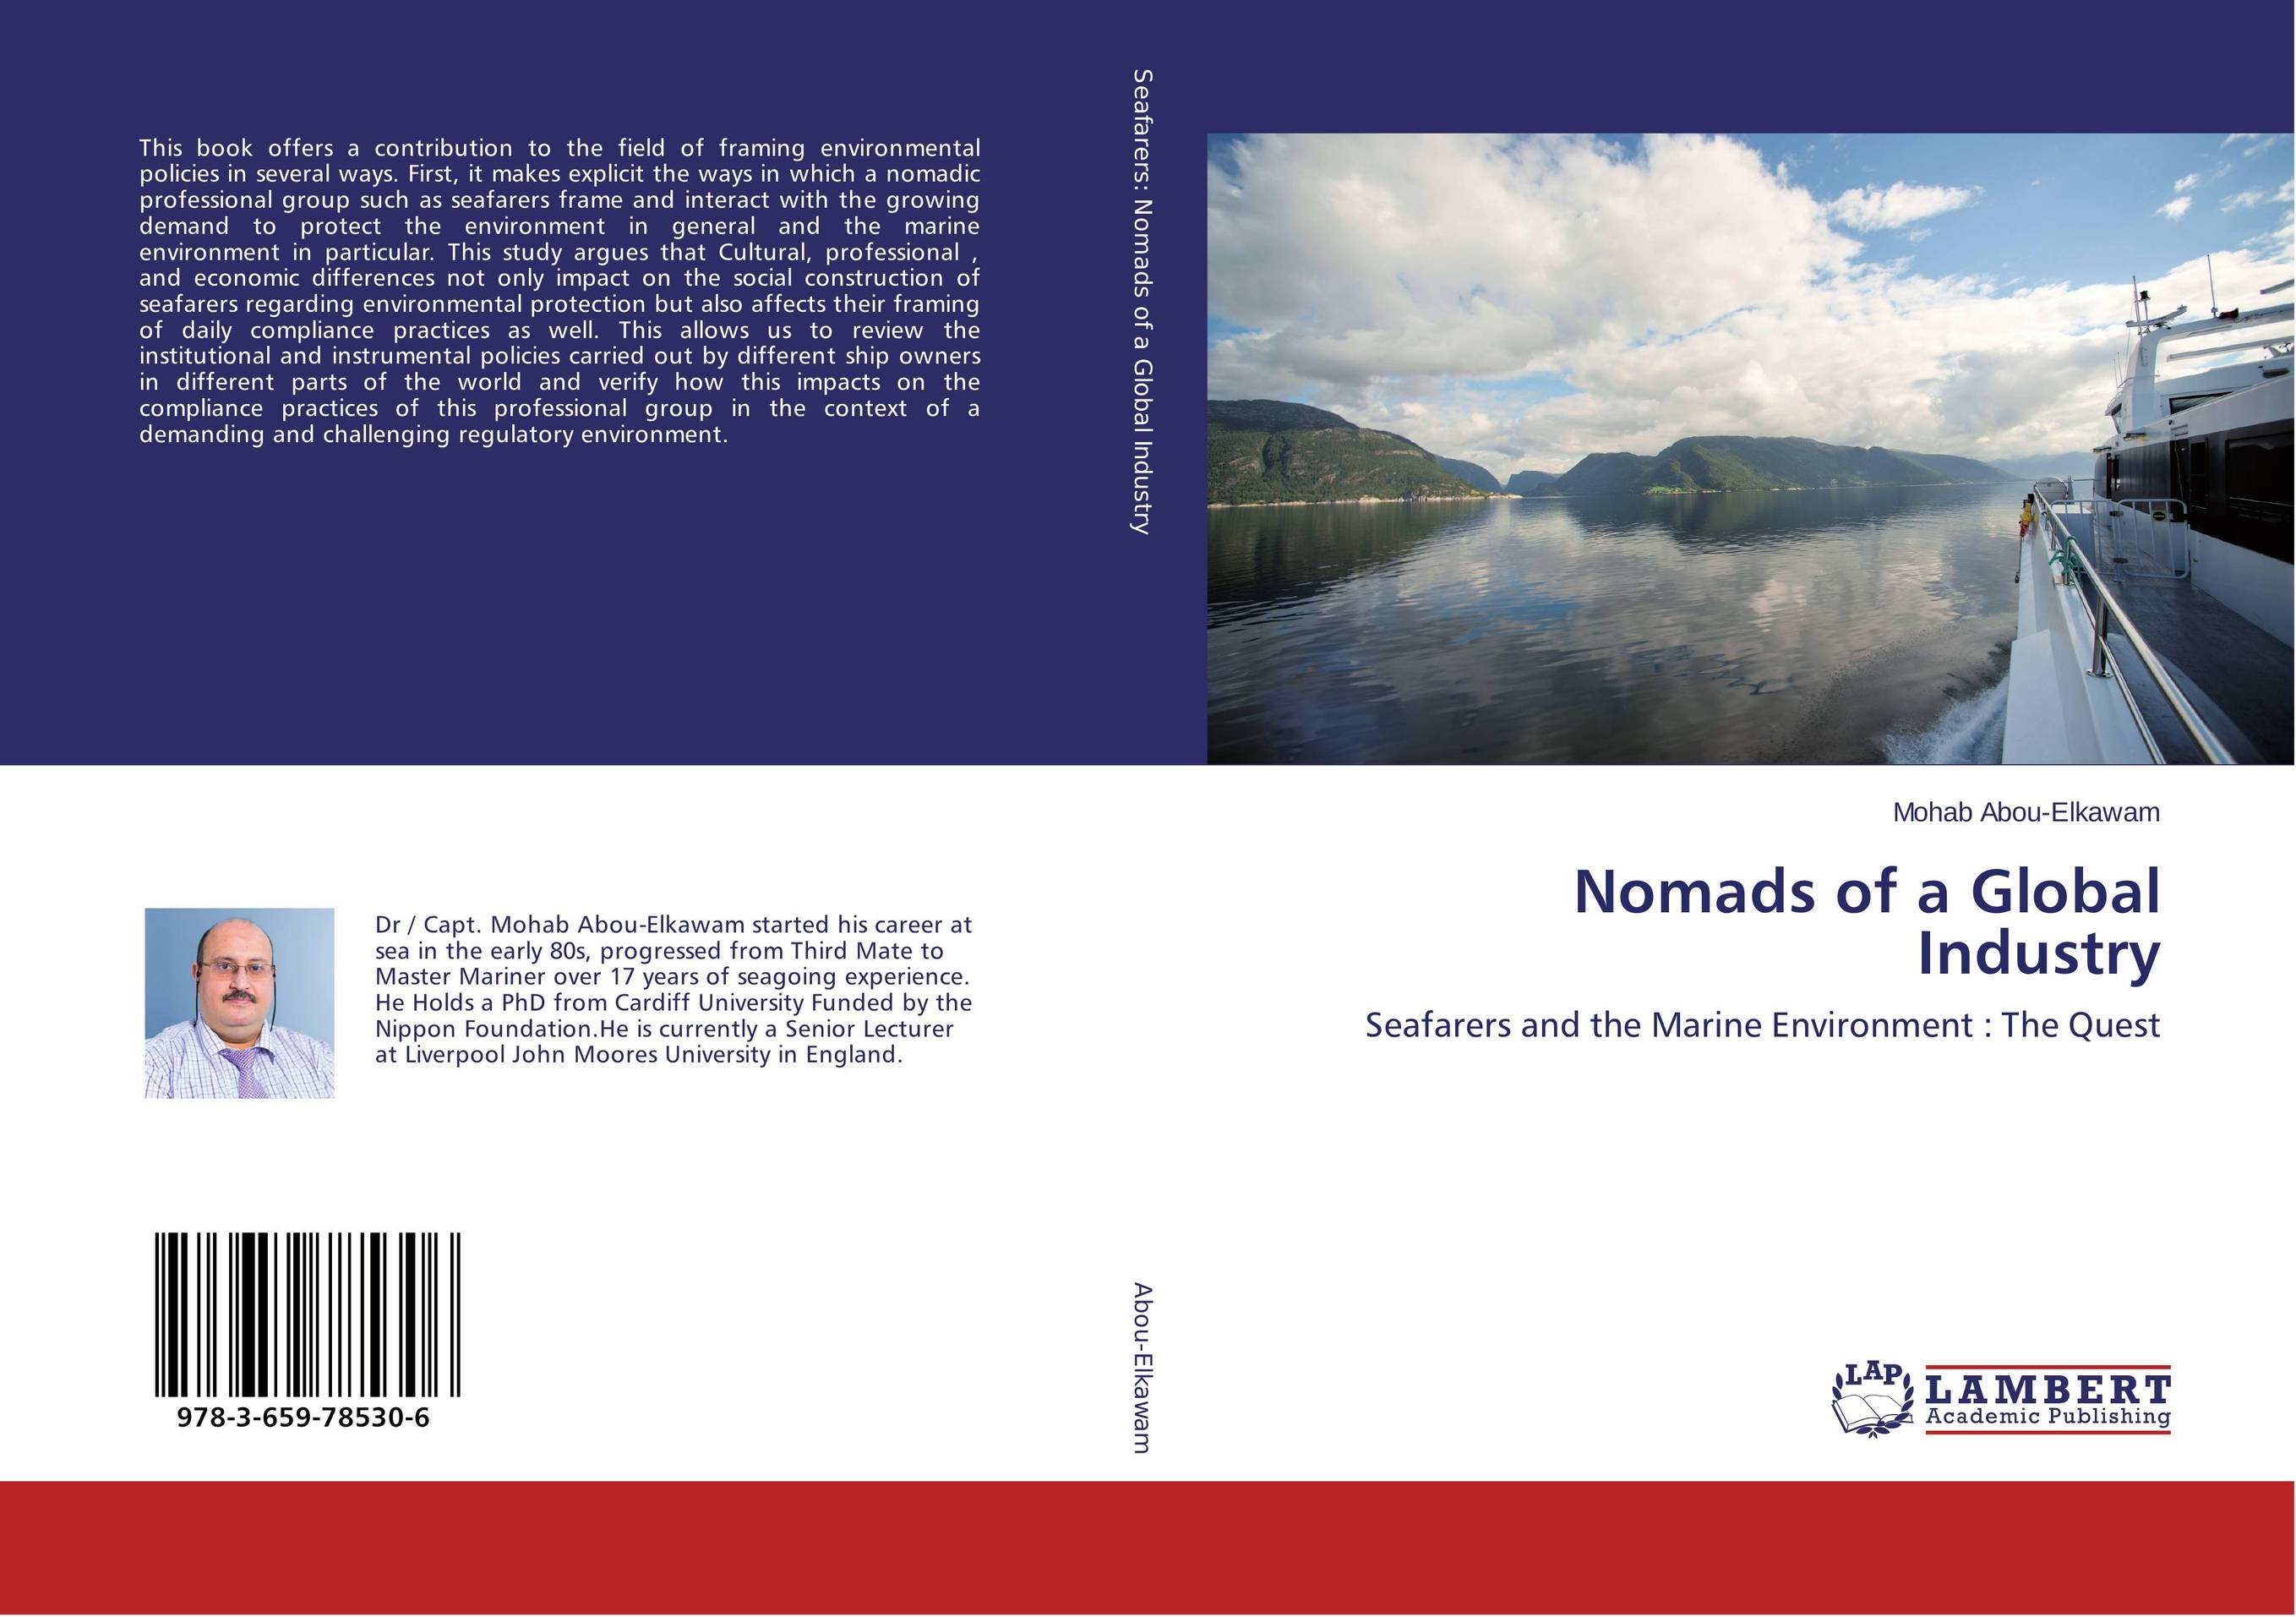 Nomads of a Global Industry impact of the handicraft industry on the environment